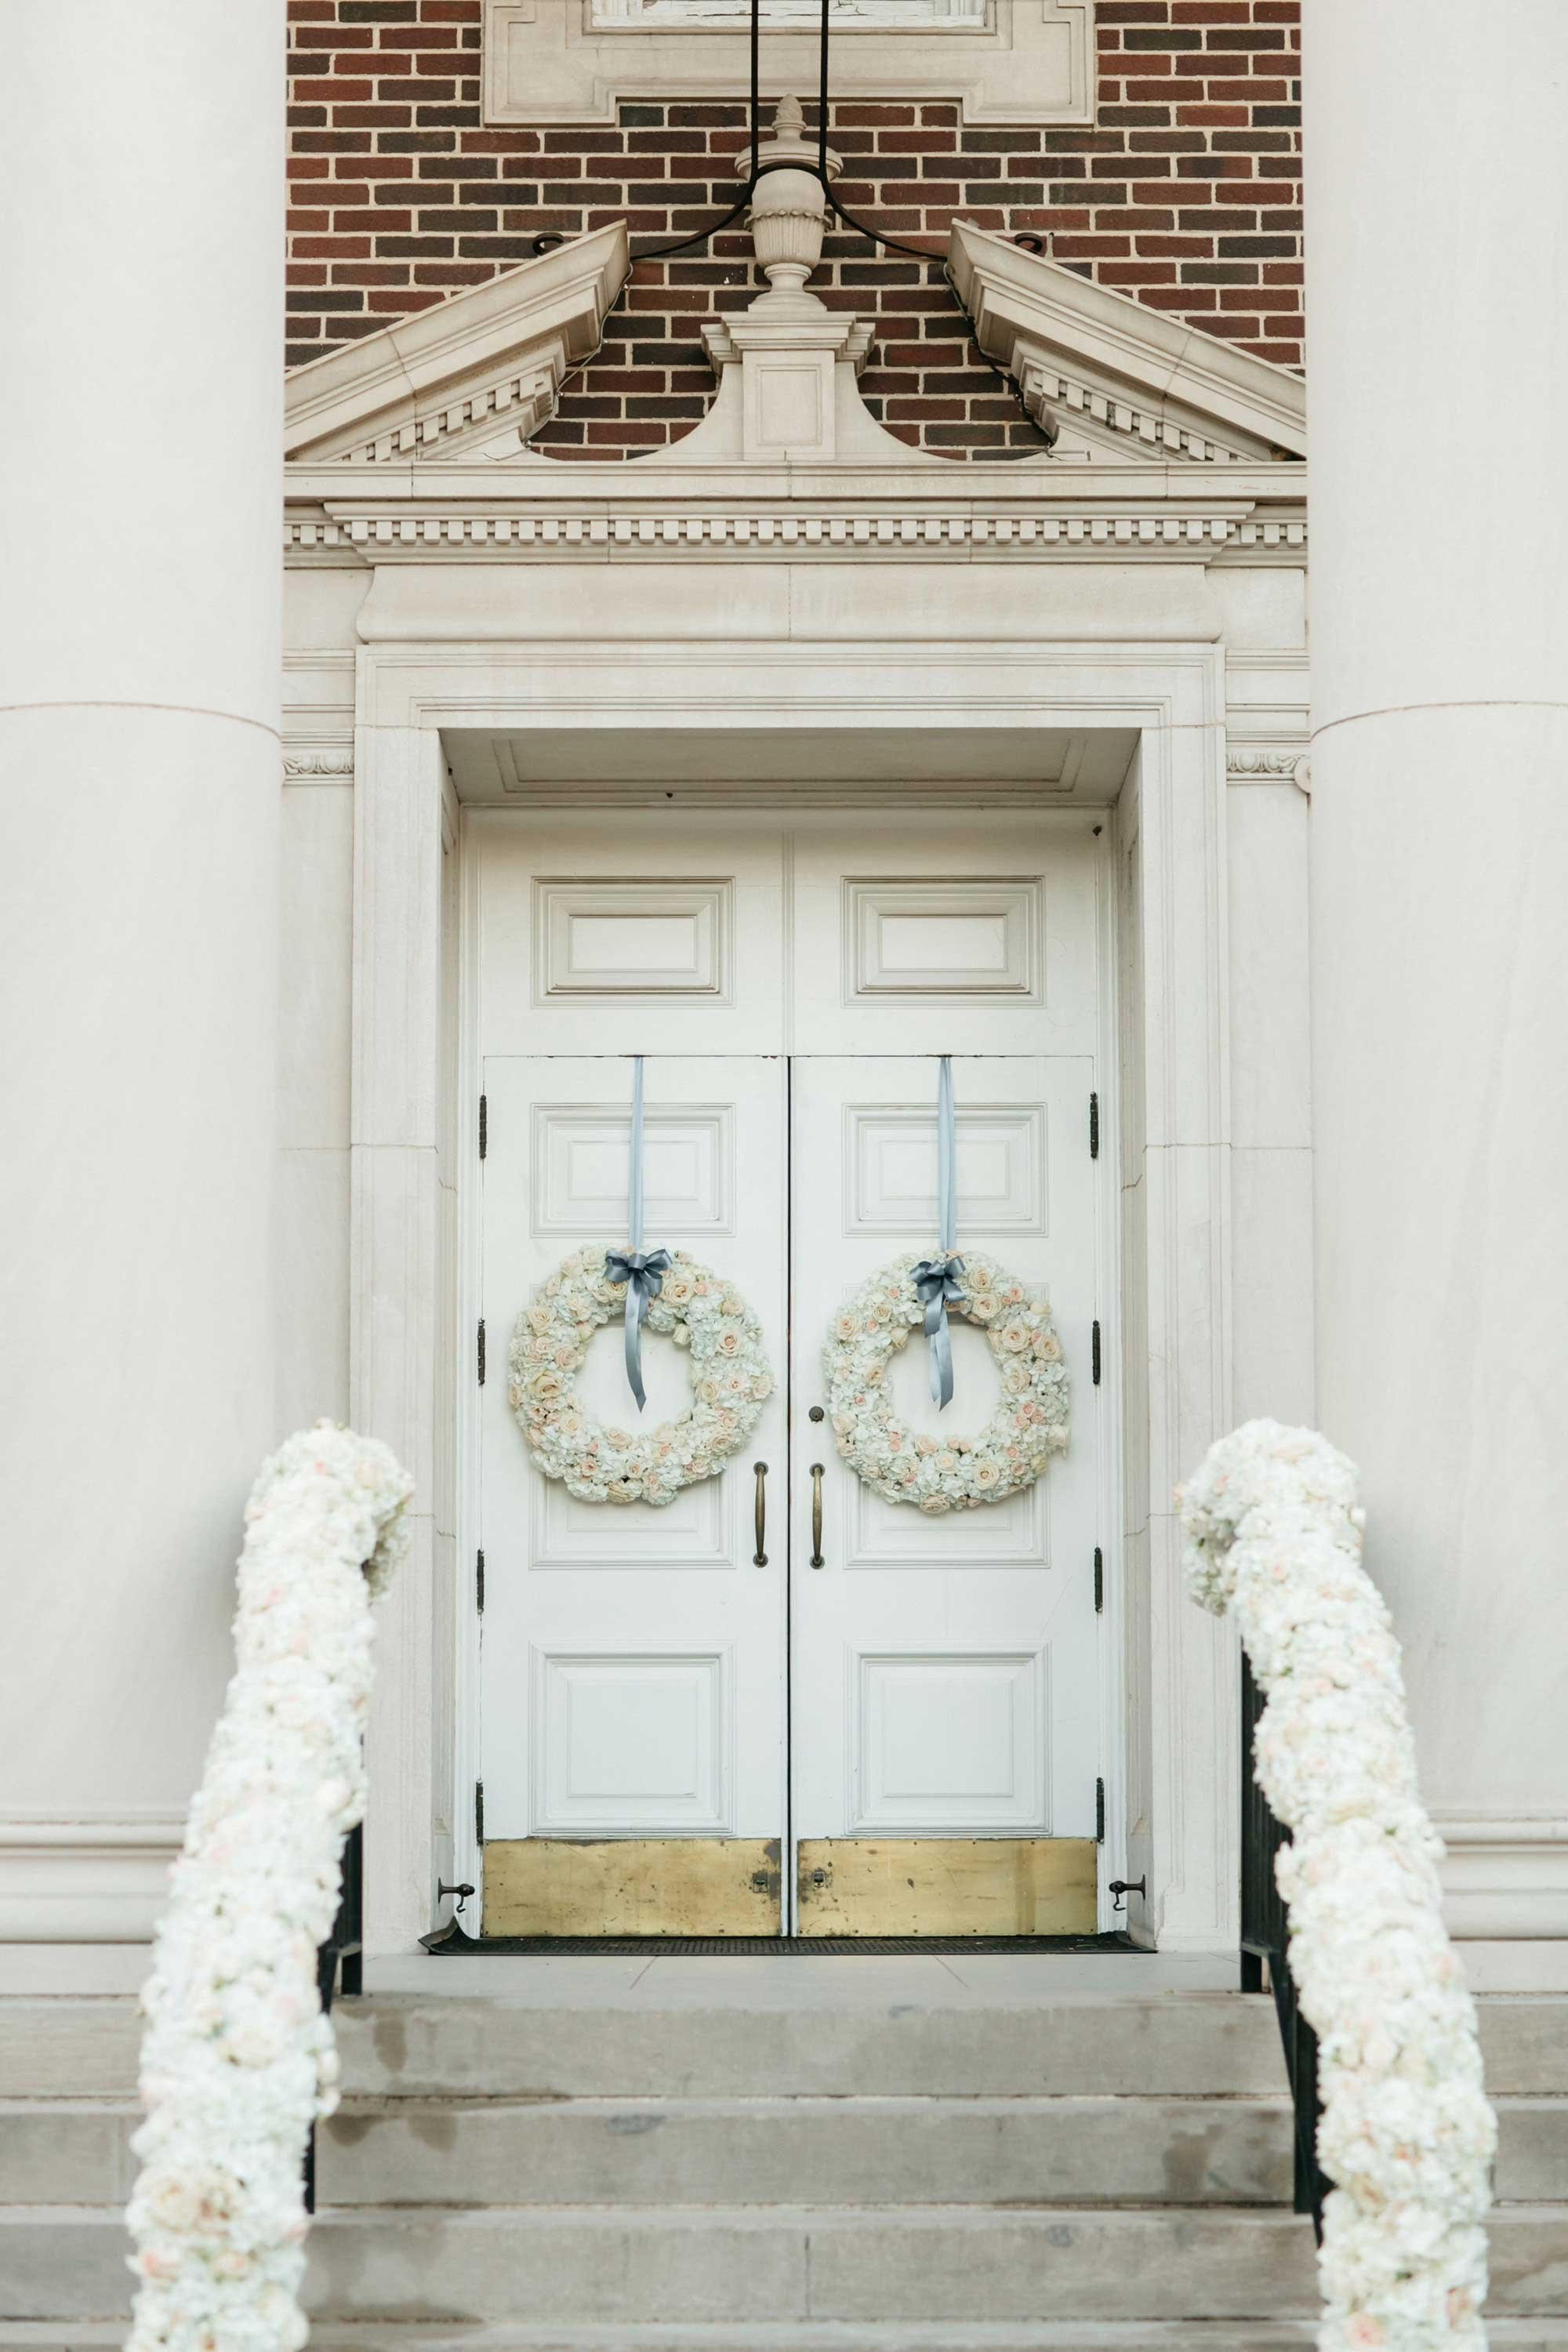 White flowers with blue ribbon on church wedding door